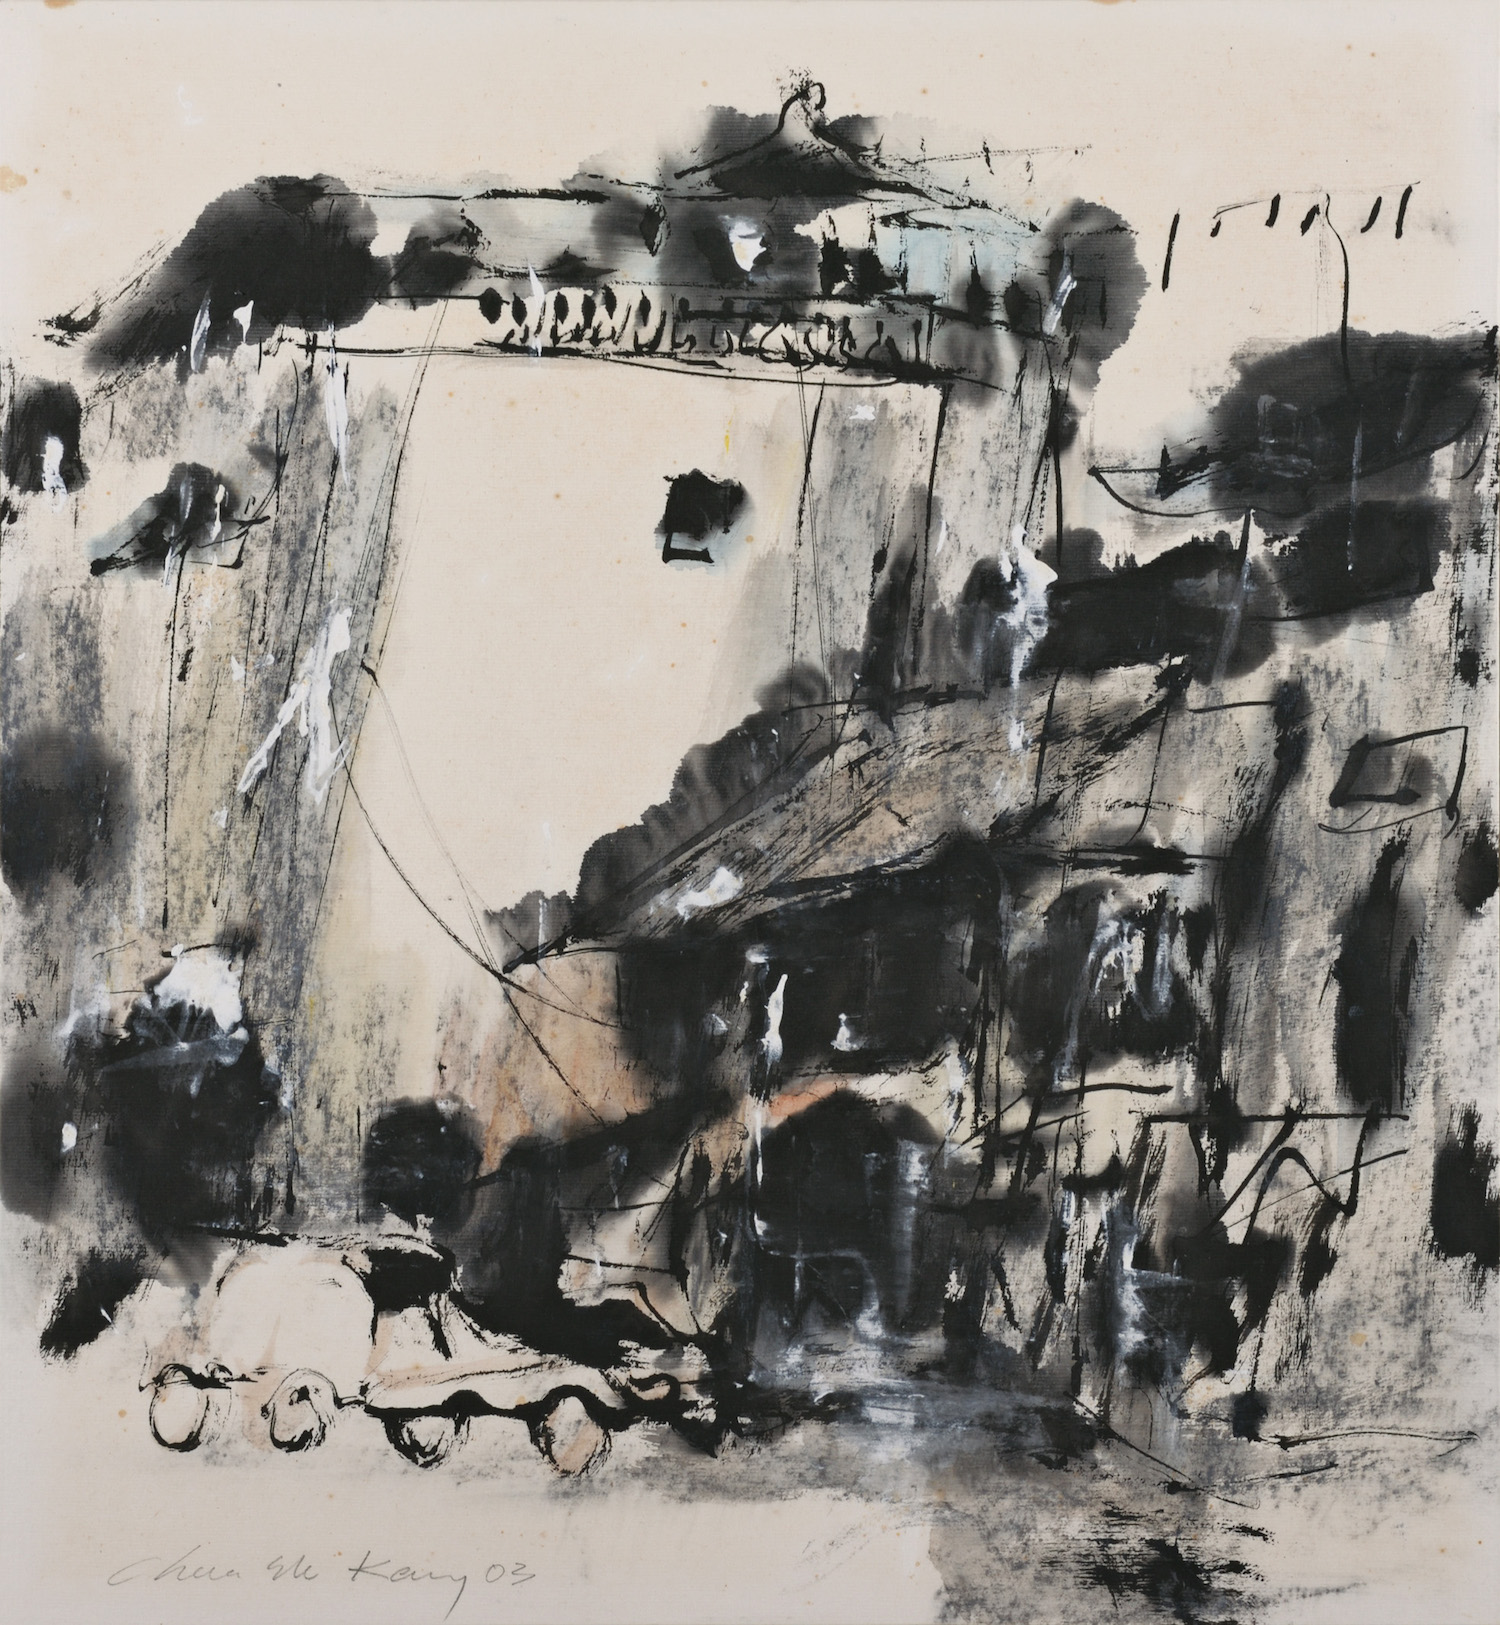 Chua Ek Kay, 'Old Shophouse on North Canal Road', 2003, ink and colour on paper, 45 x 45cm. Image courtesy of the Estate of Chua Ek Kay.